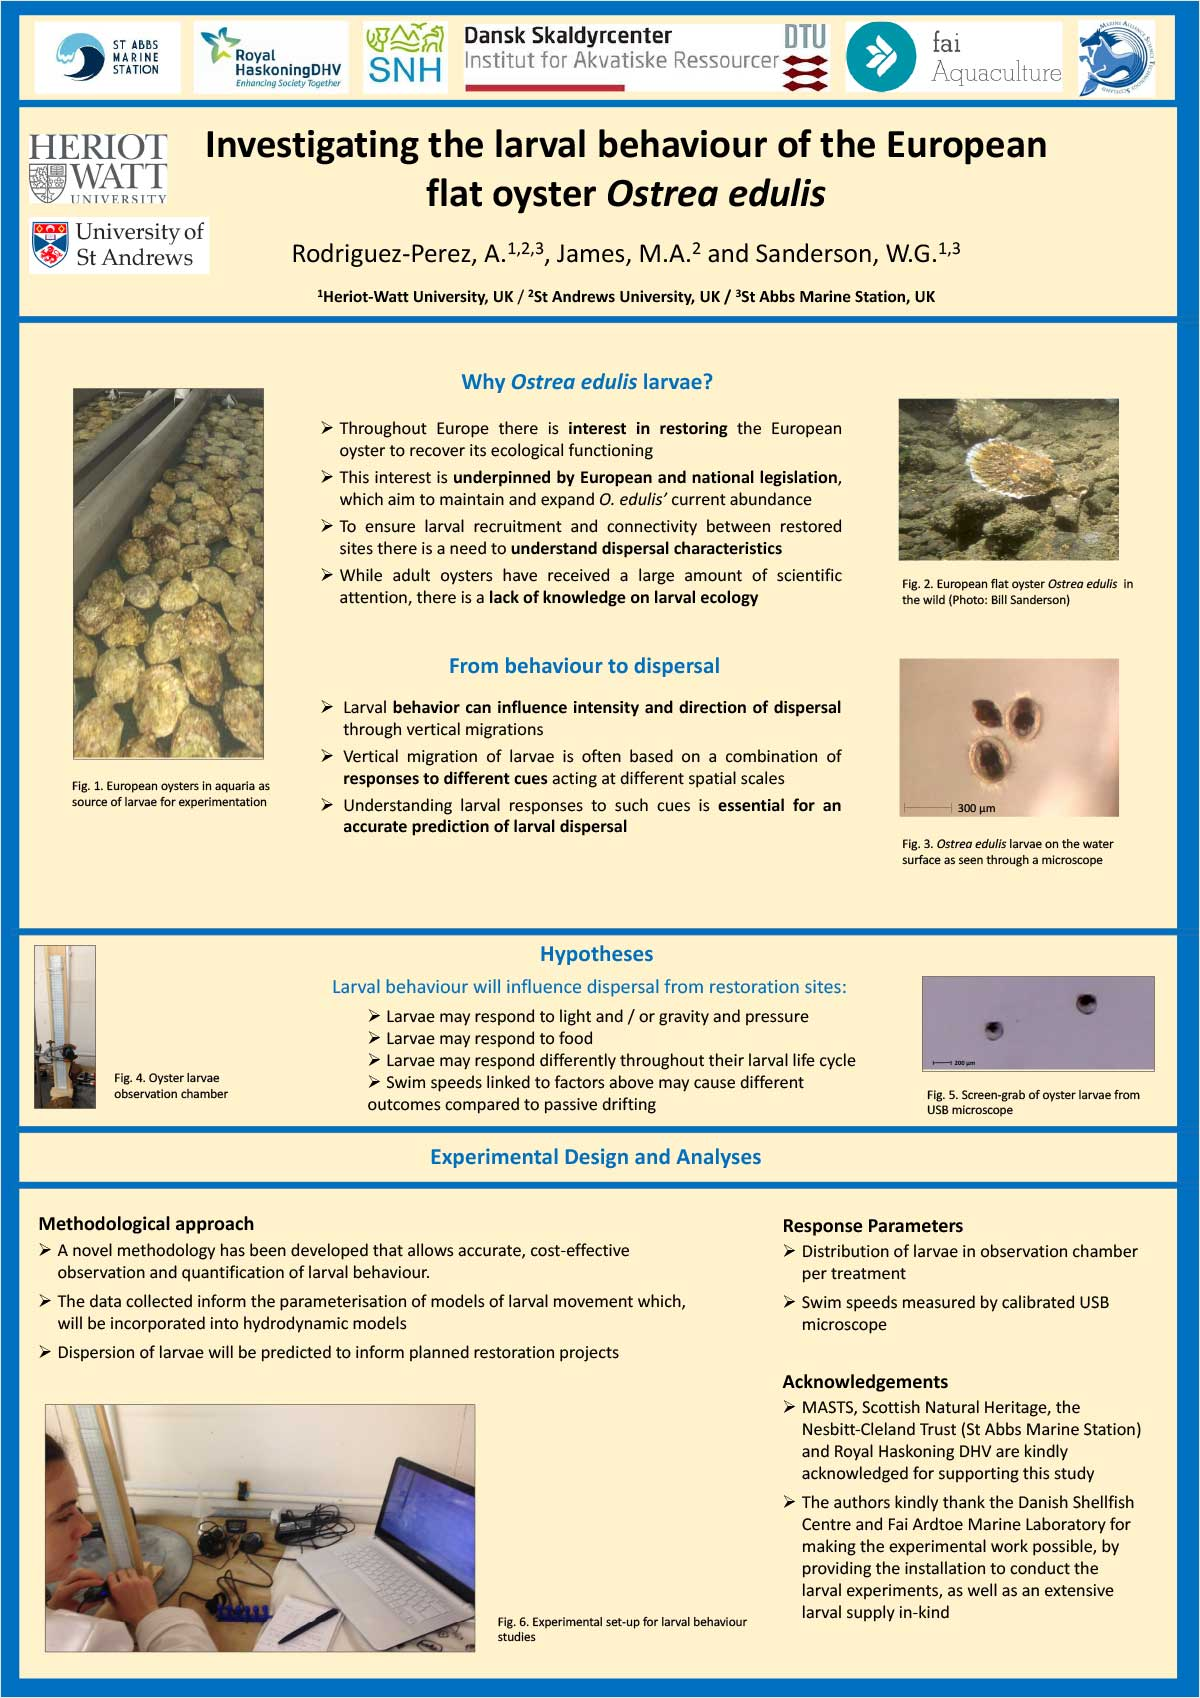 Poster Investigating the larval behaviour of European flat oyster Ostrea edulis